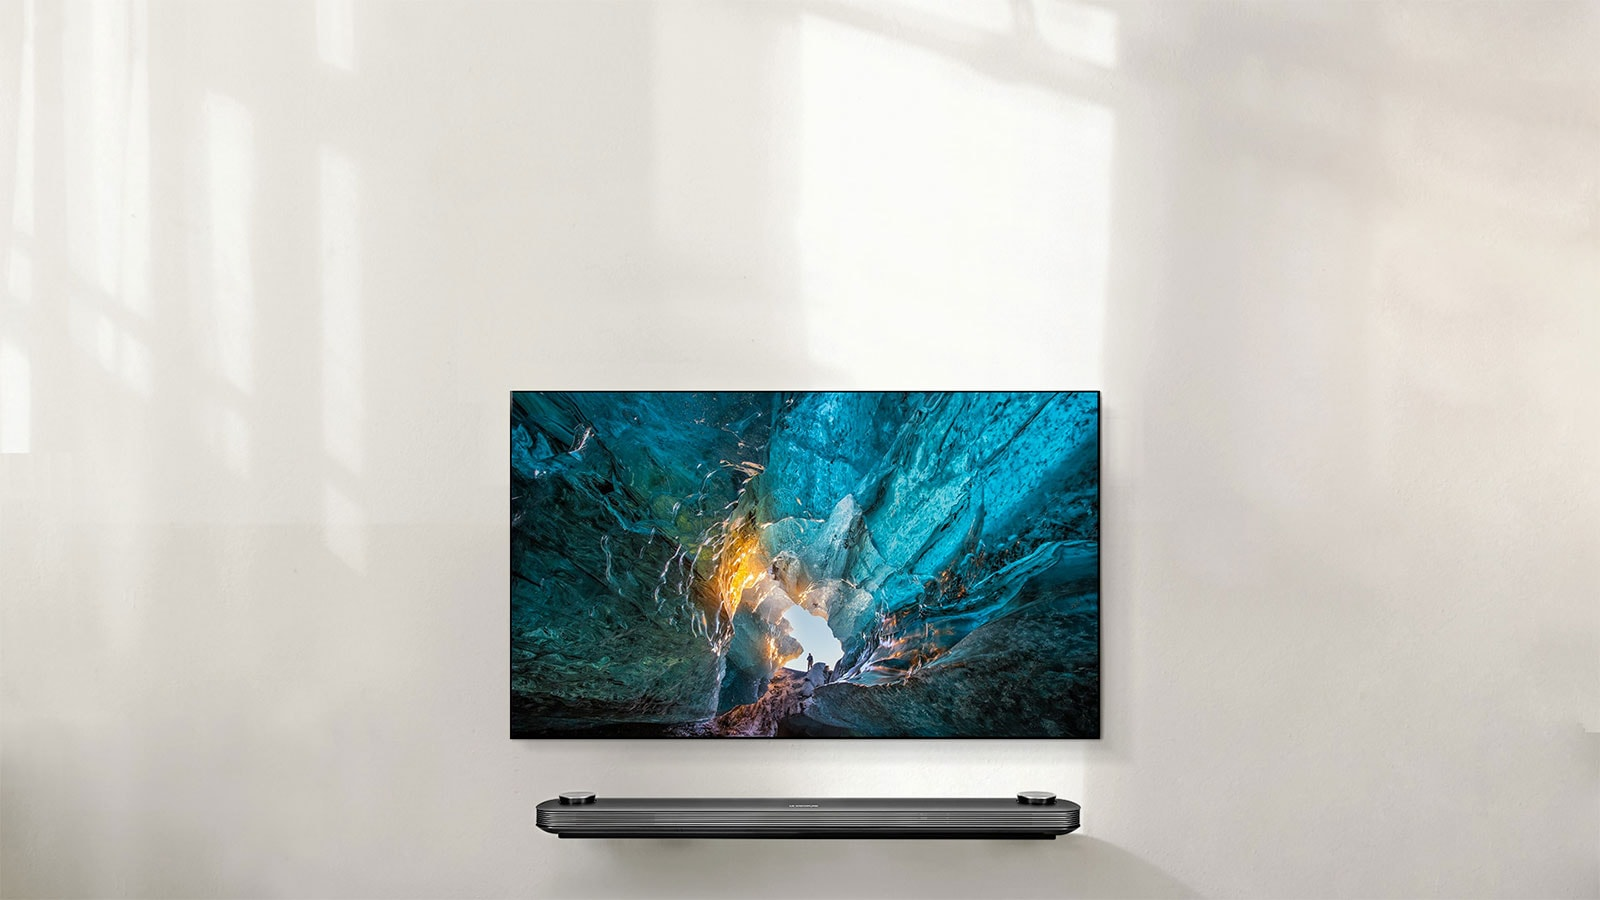 LG SIGNATURE WALLPAPER OLED TV 65 Inch